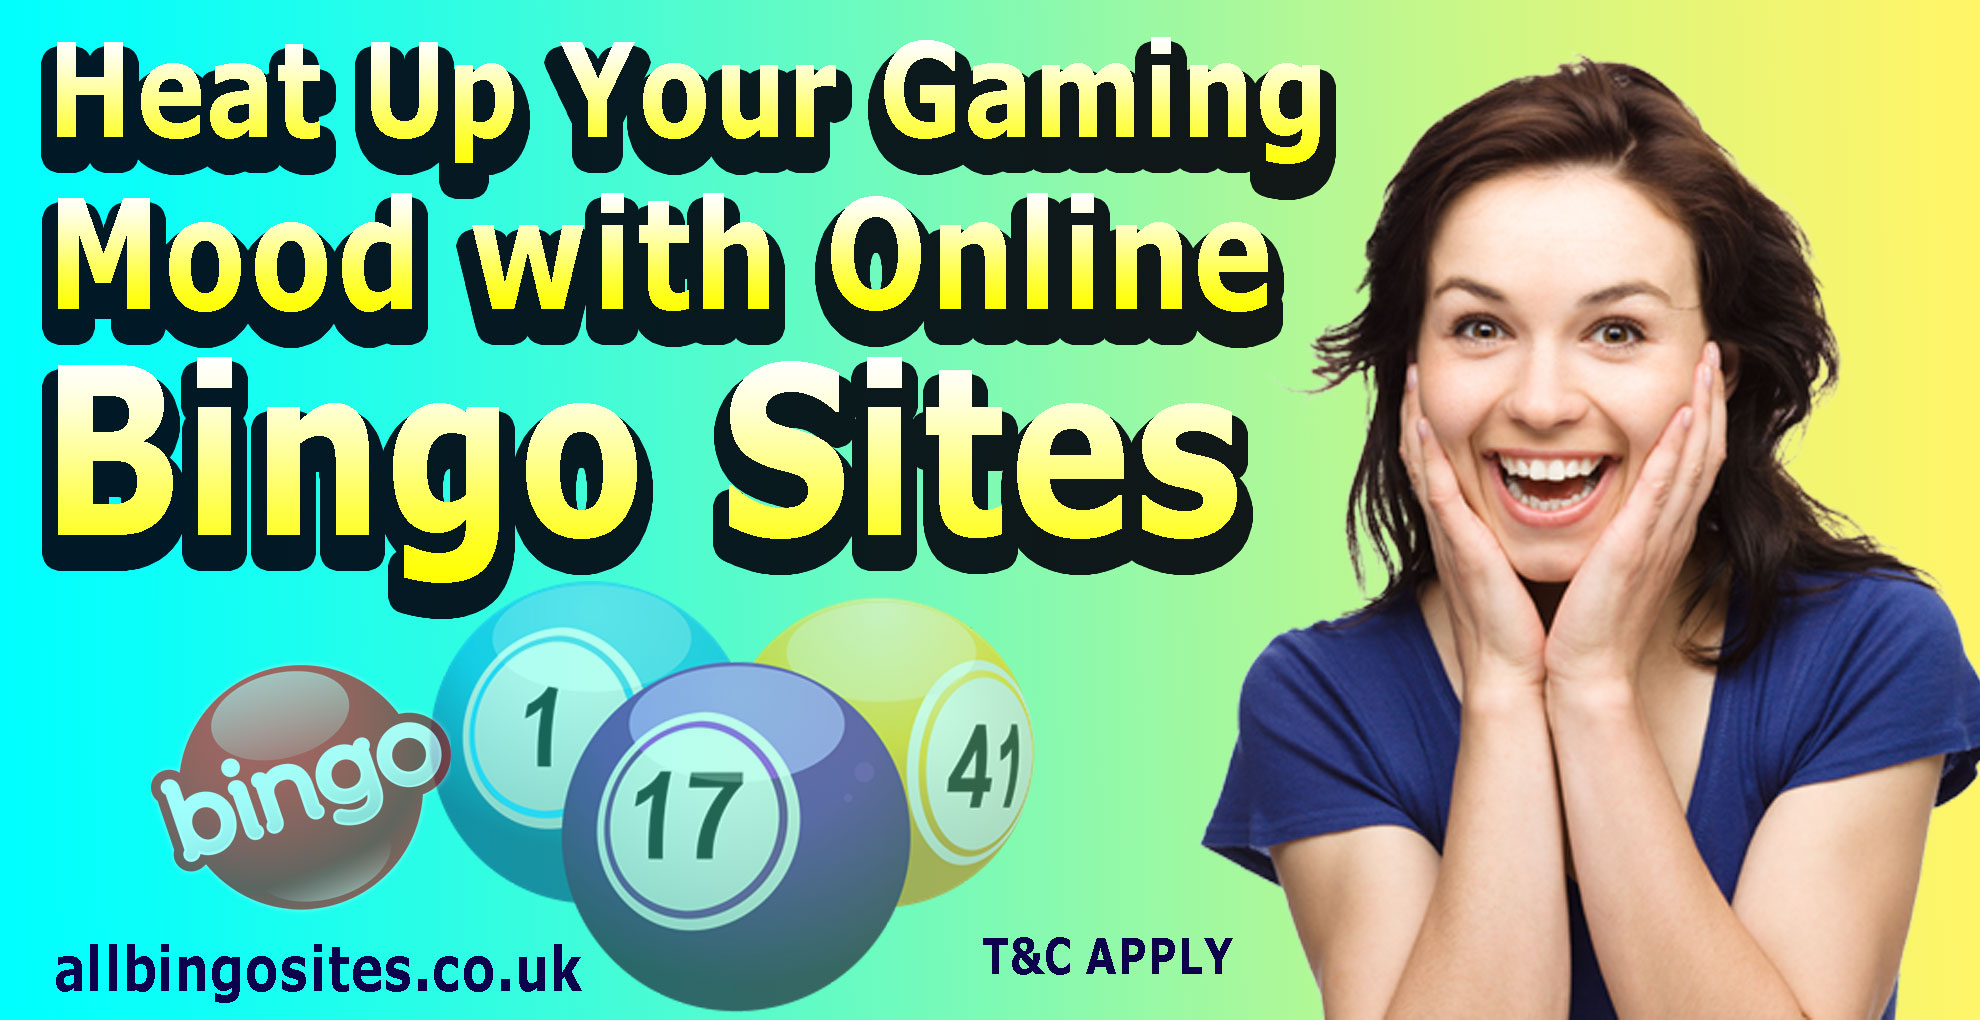 Heat Up Your Gaming Mood with Online Bingo Sites